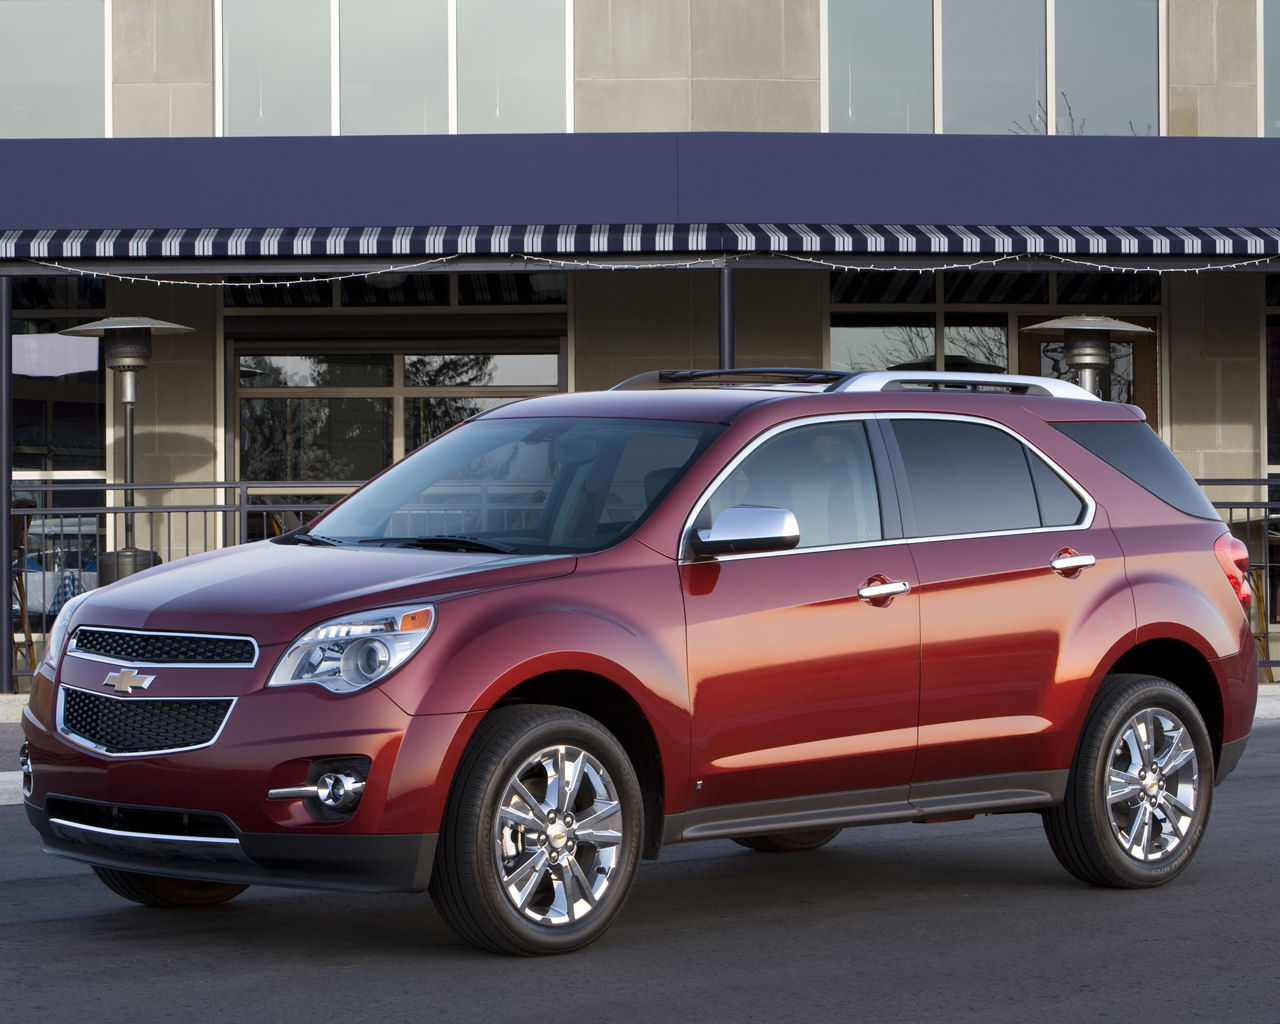 2012 Chevrolet Equinox Front Angle (View 1 of 6)